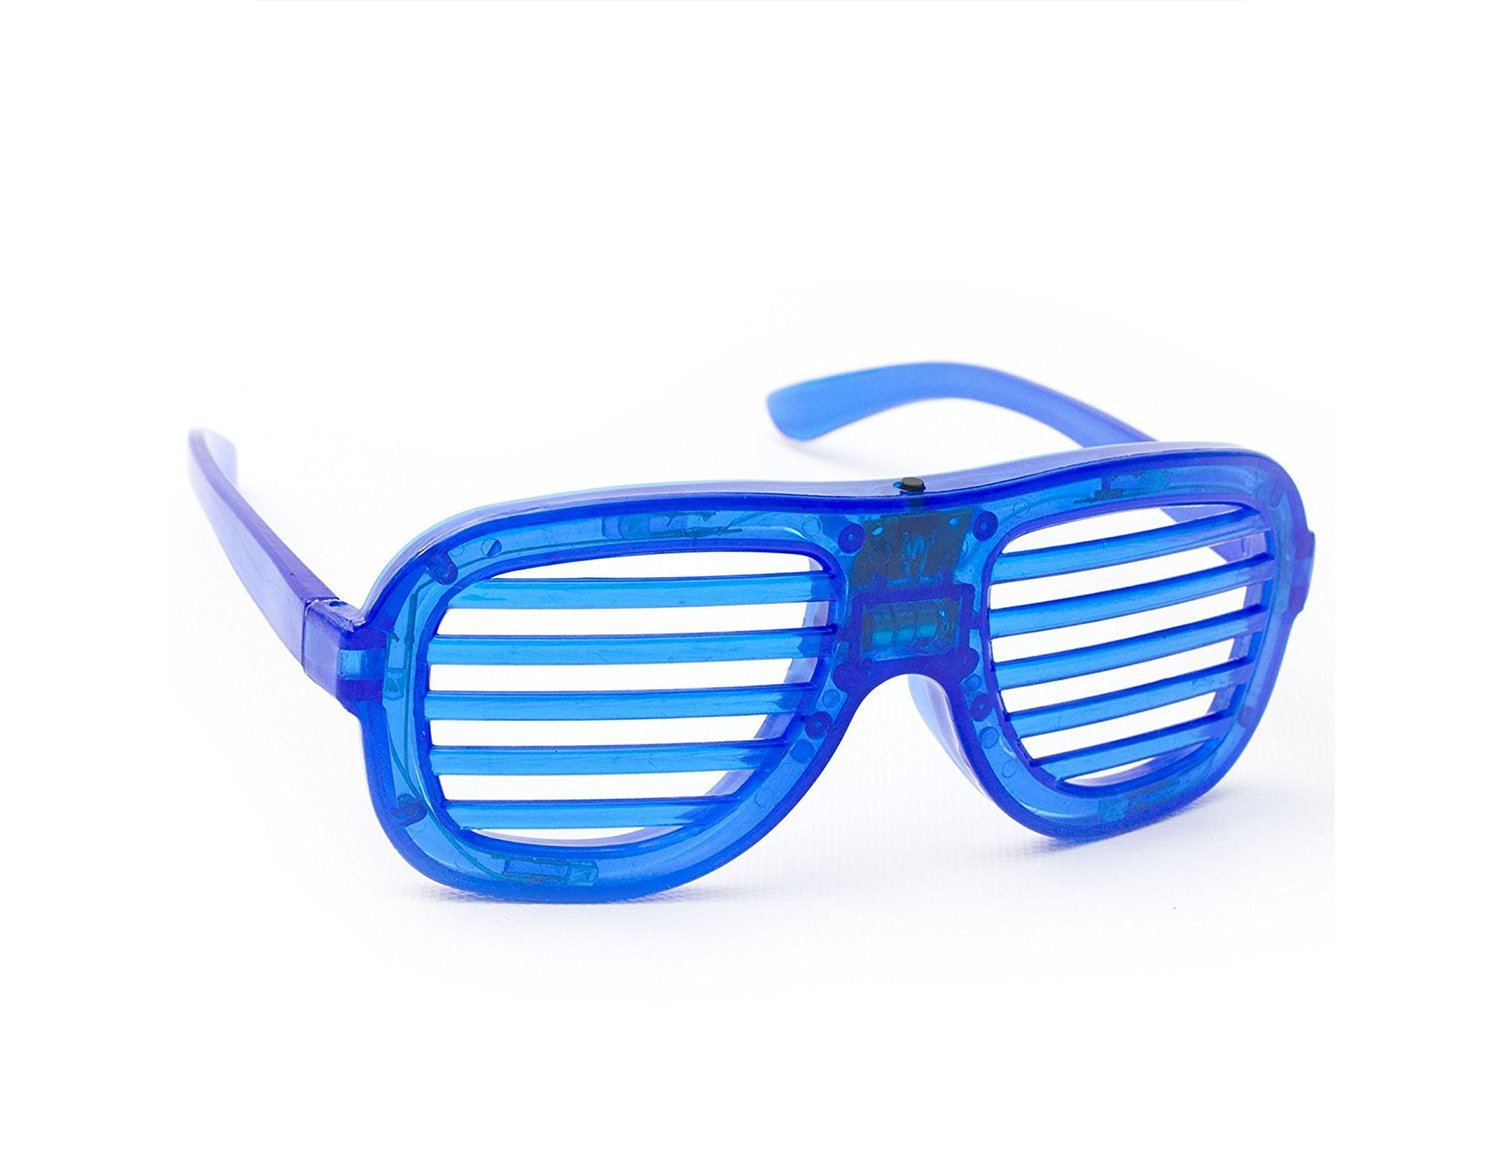 12 STAR Flashing LED Light up Slotted Sunglasses Shades Party Favors Bag Fillers